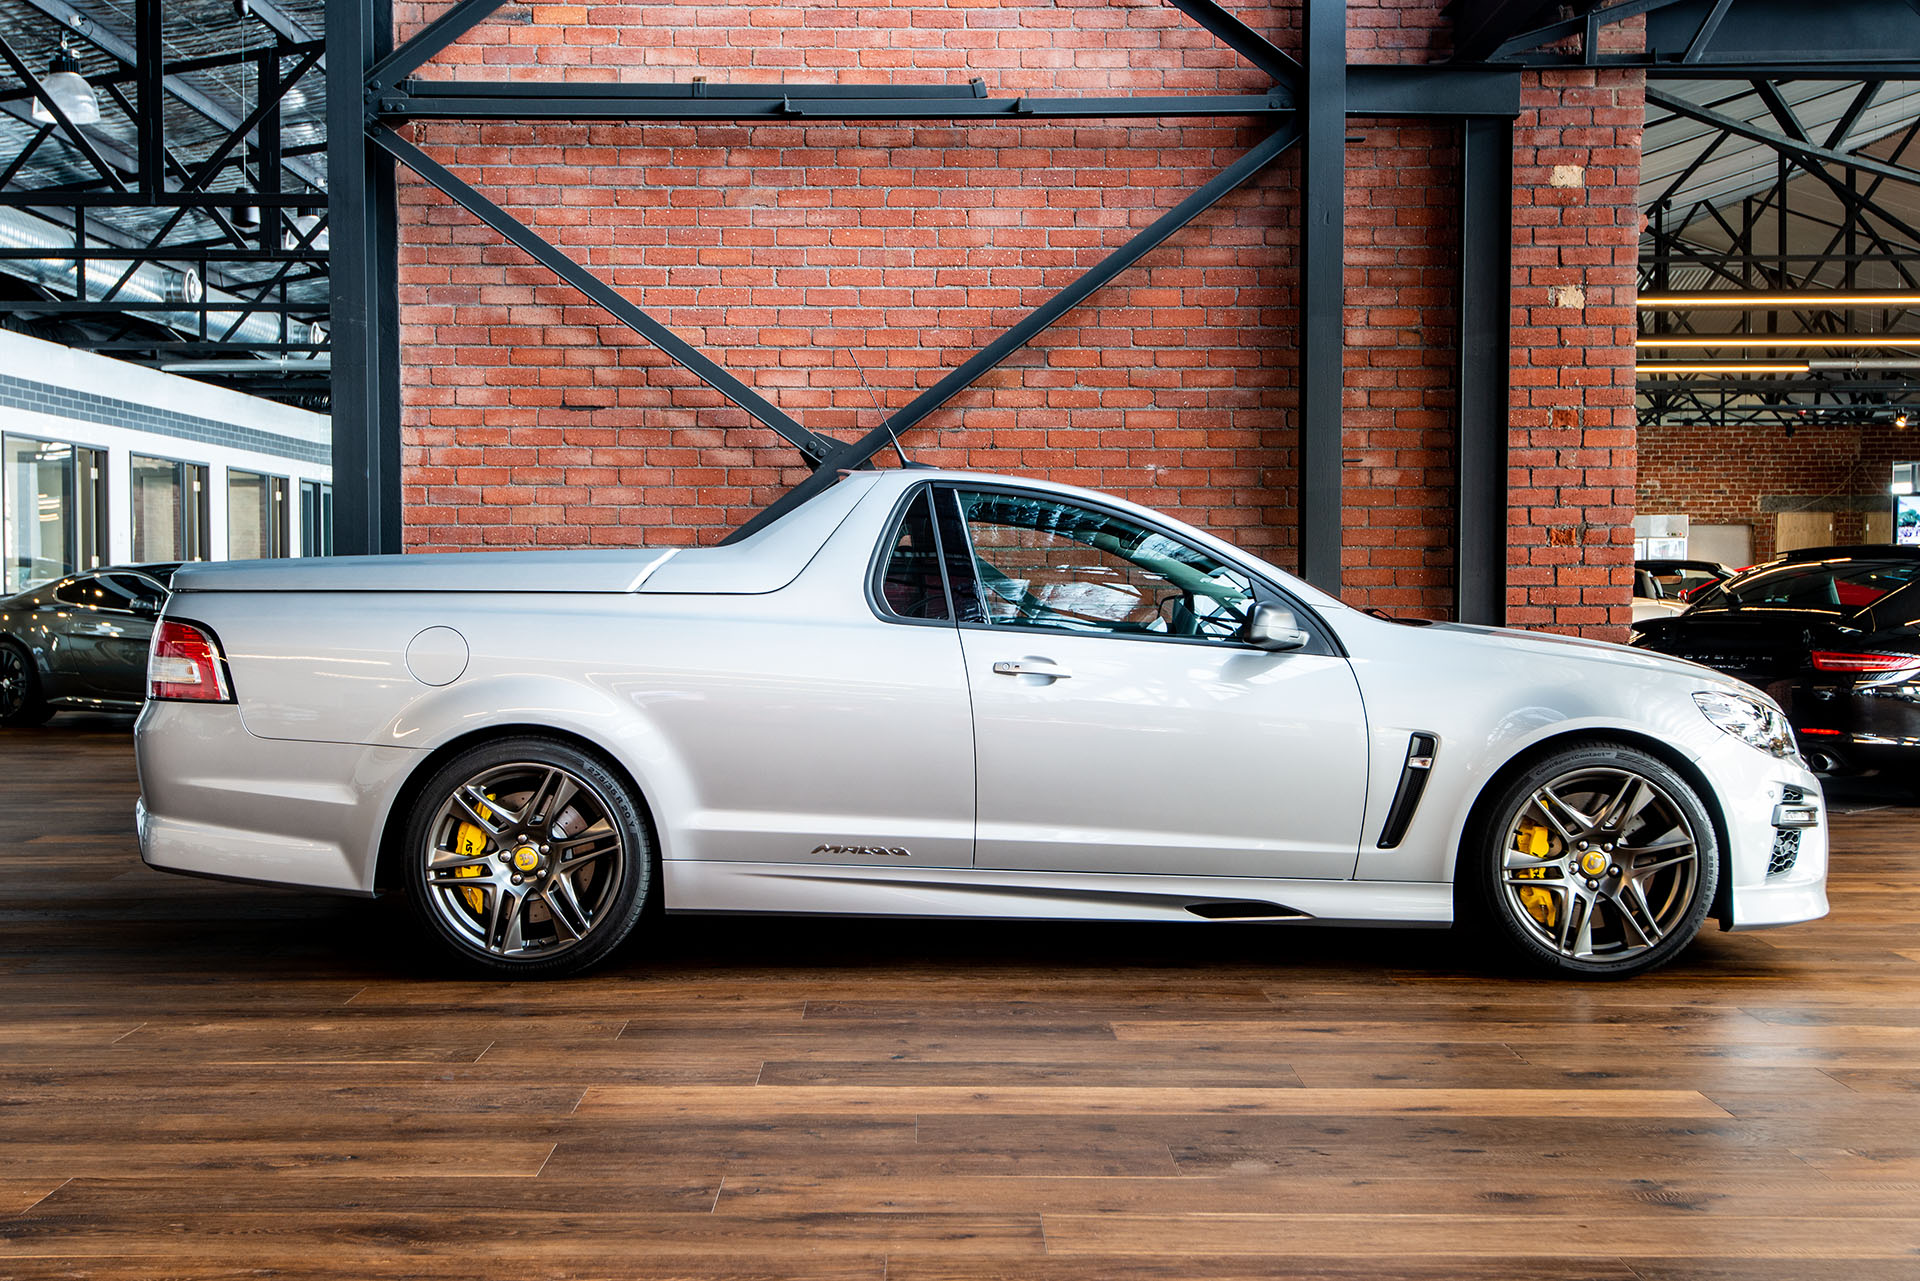 2015 HSV GTS Maloo W557 - Richmonds - Classic and Prestige Cars